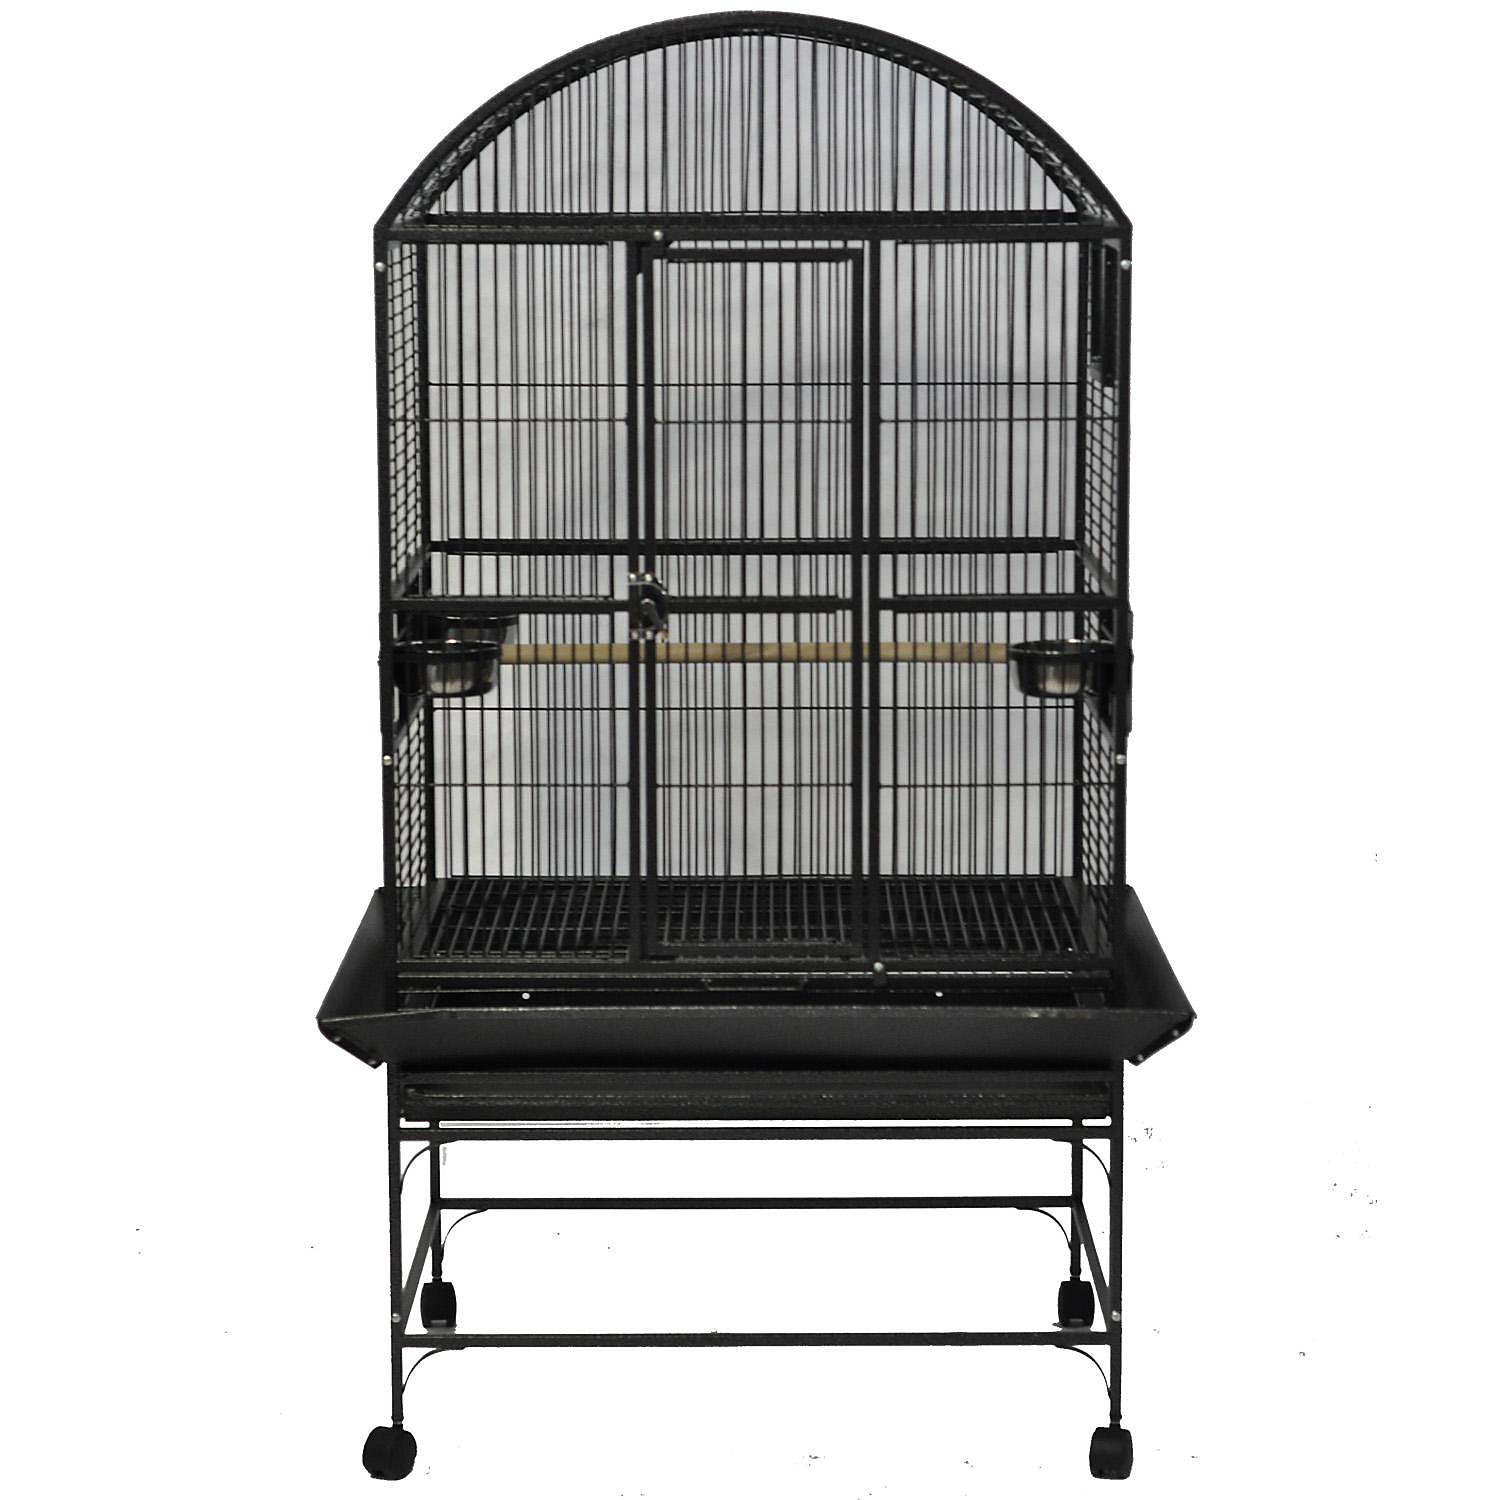 AE Cage Company Stainless Steel Palace Dometop Bird Cage 32 L X 23 W X 63 H 32 IN Gray